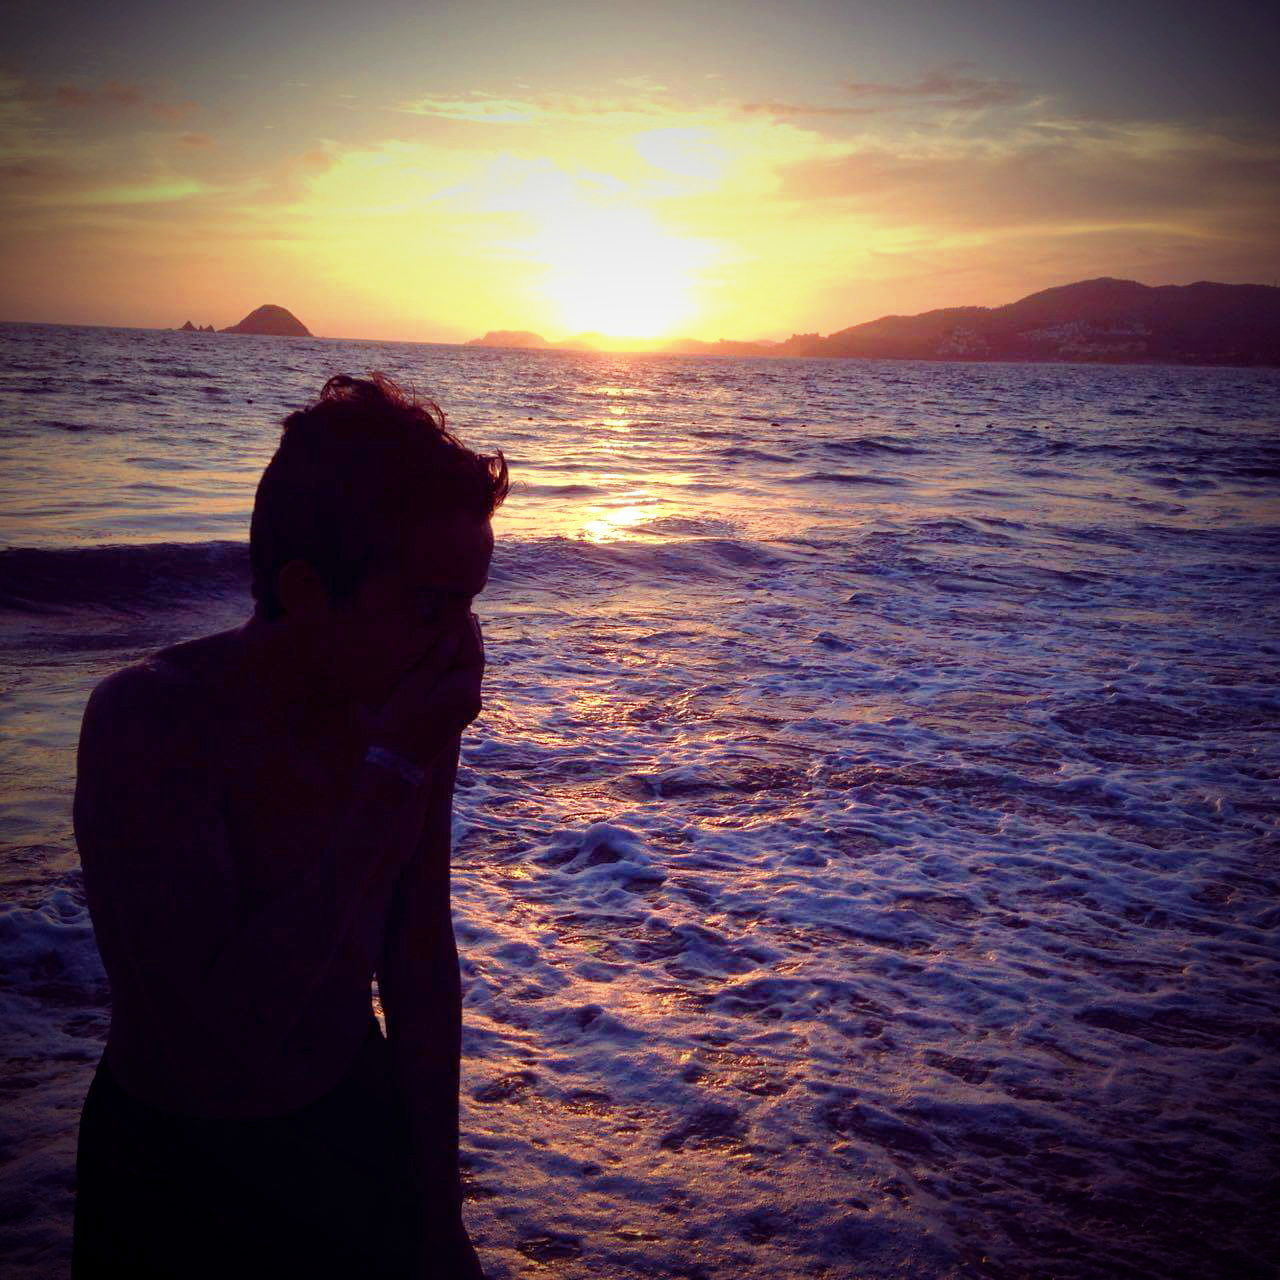 sunset, sea, beauty in nature, water, nature, wave, scenics, orange color, beach, silhouette, one person, standing, real people, sky, tranquil scene, outdoors, tranquility, horizon over water, leisure activity, vacations, lifestyles, women, day, people